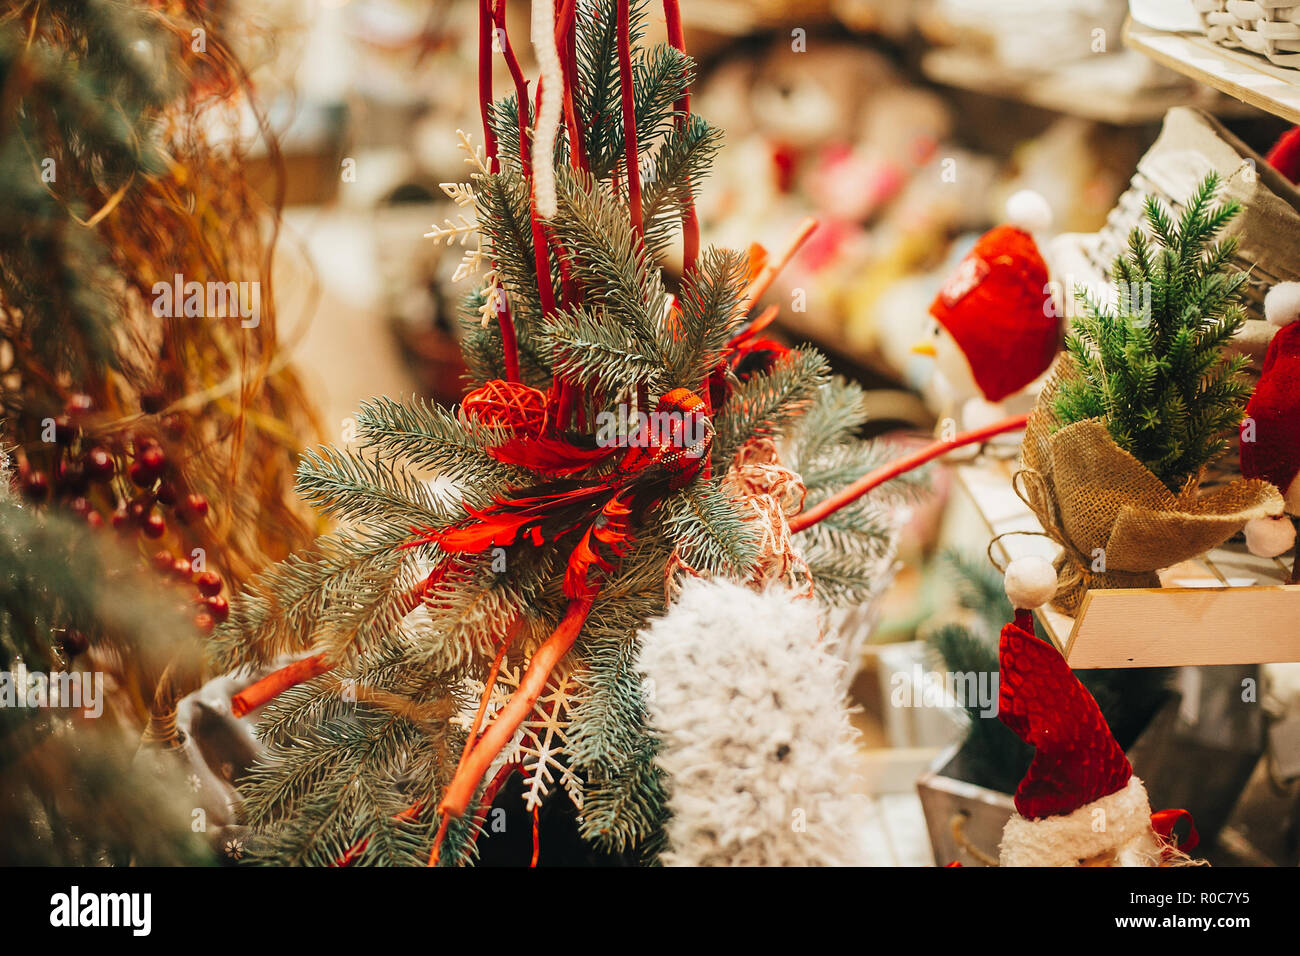 Rustic Christmas Tree With Toys On Window In European City Street Simple Festive Decorations And Illumination In Winter Holidays In Town Presents O Stock Photo Alamy